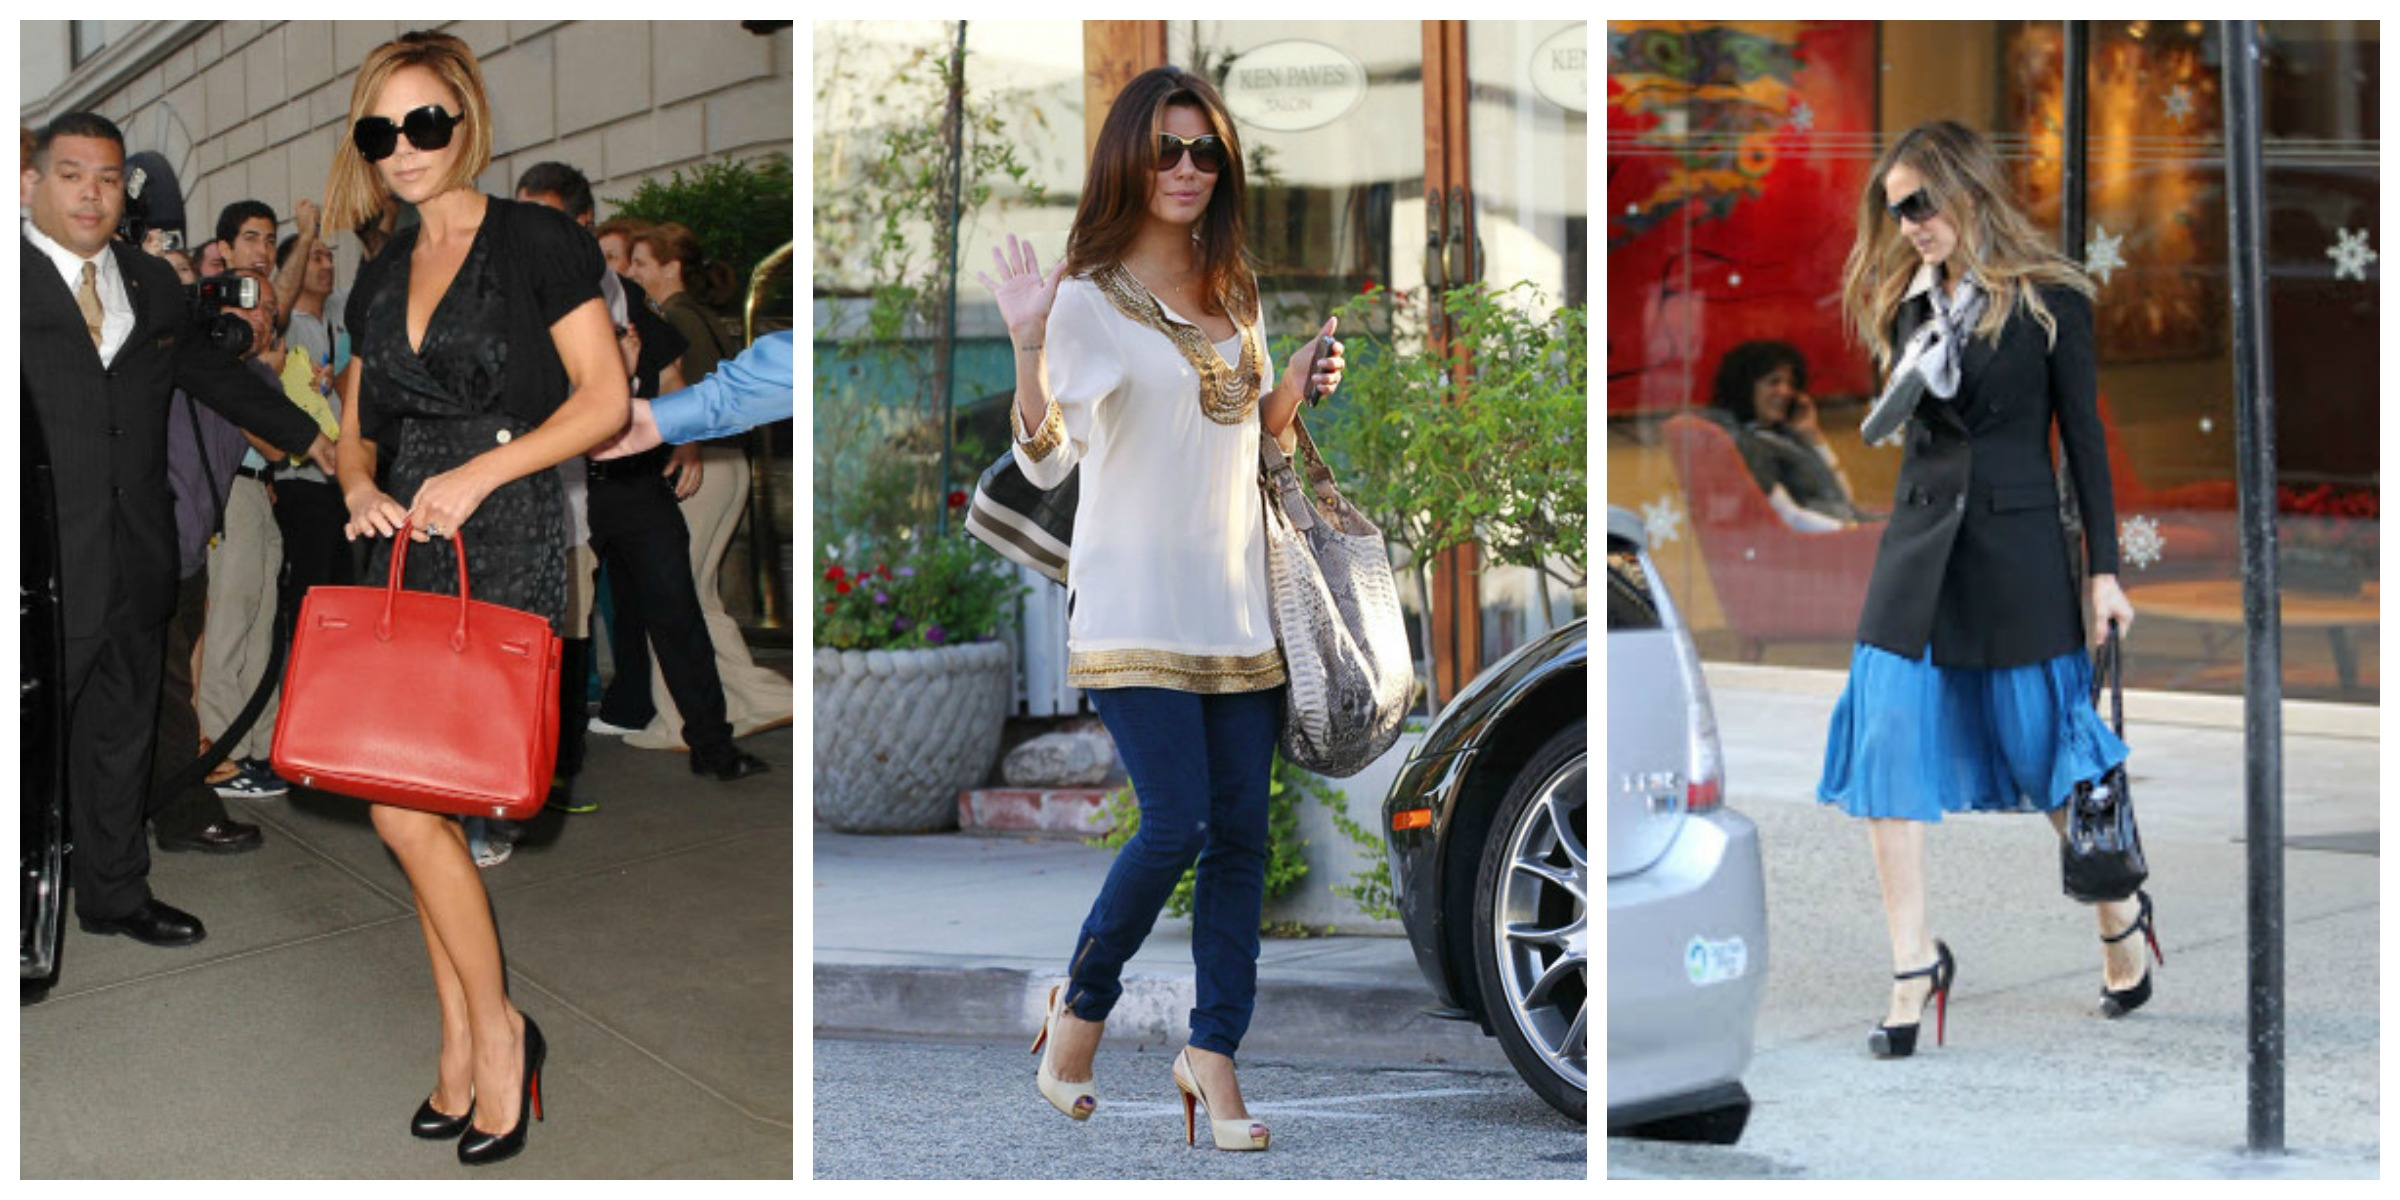 Las celebrities y Louboutin